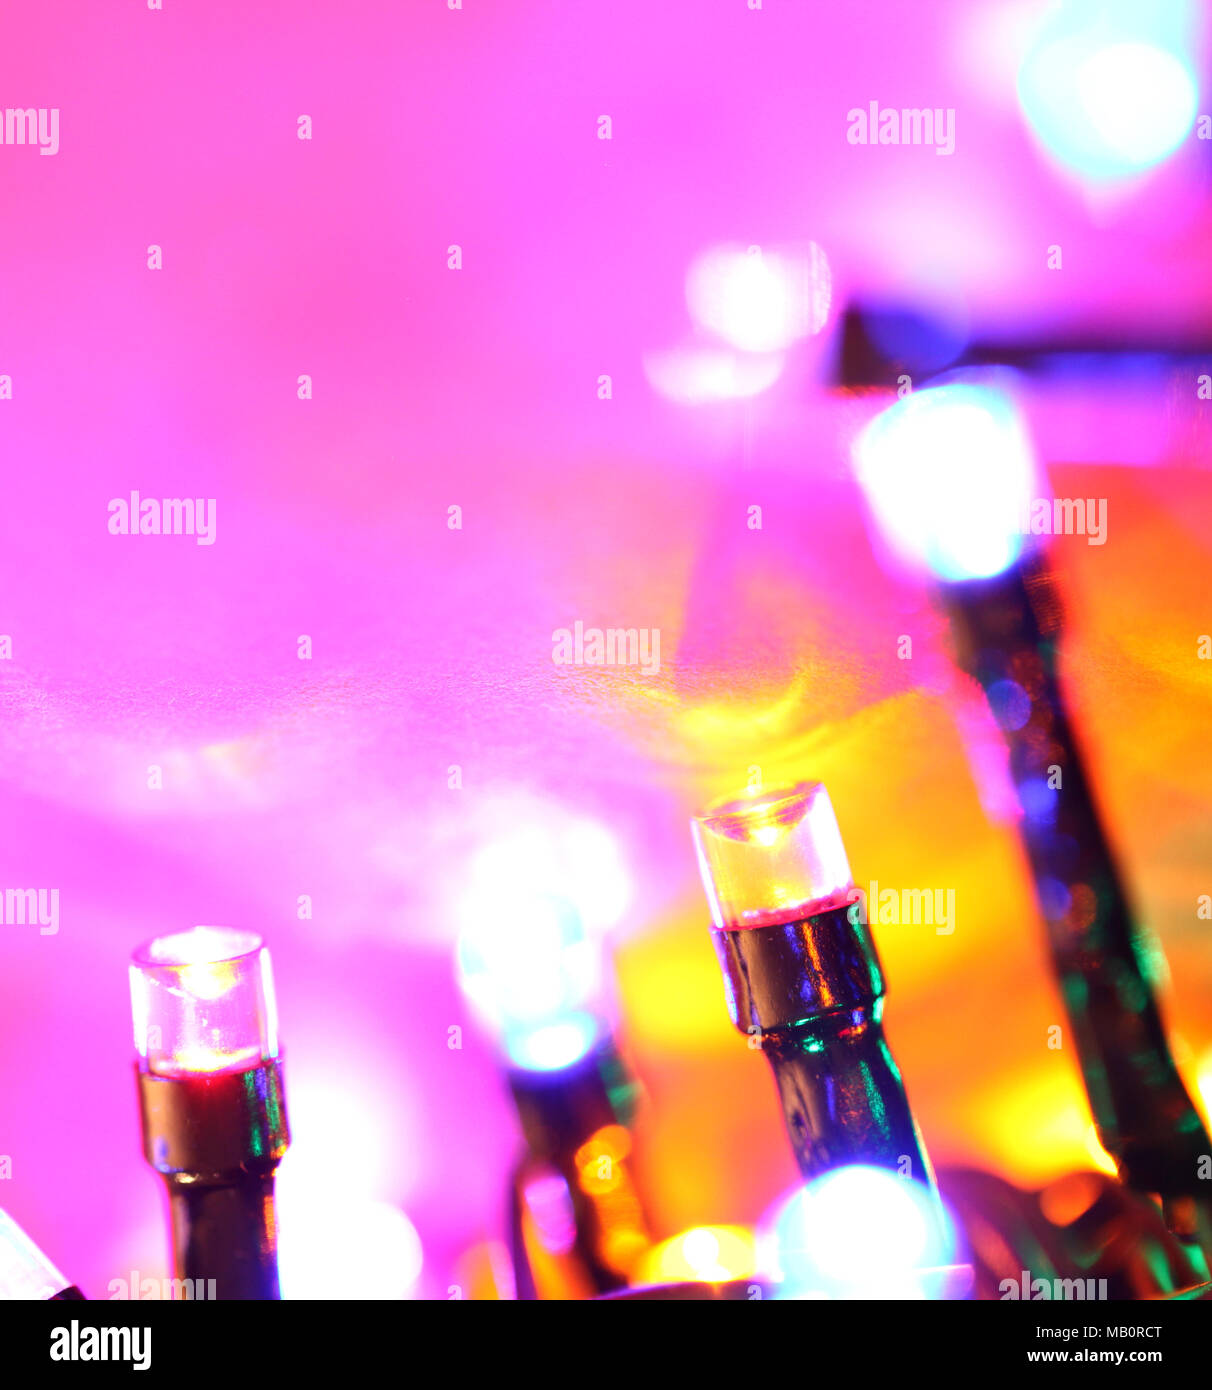 Led Close Up Photo178883288 Of Blinking Alamy Bulbs Stock v76gybIYf